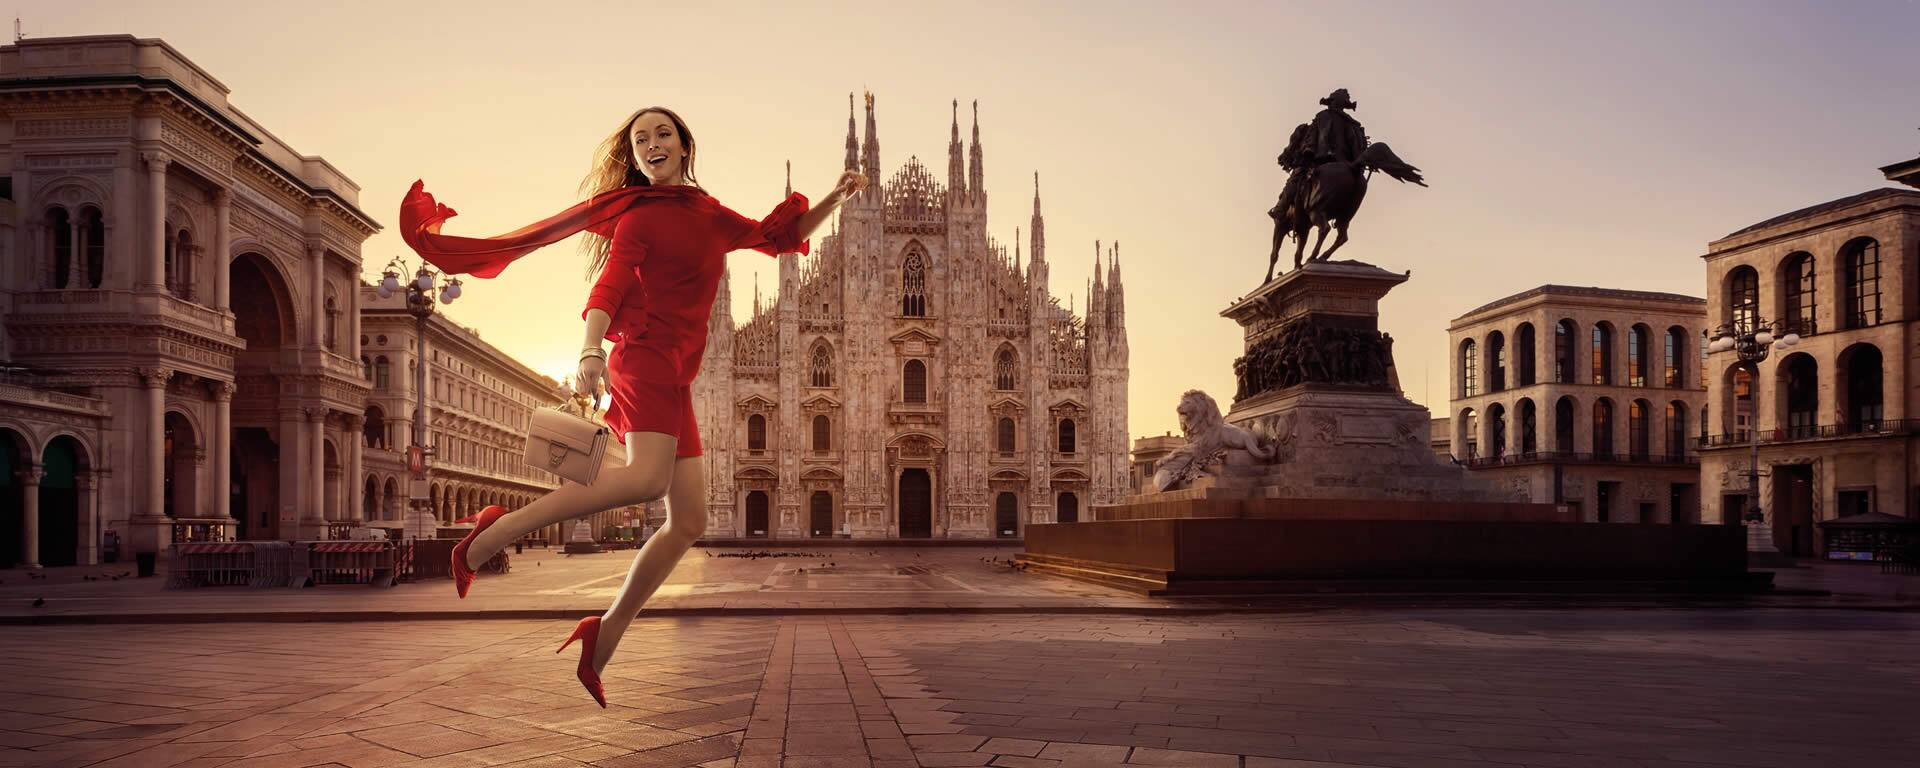 Miami to Milan Italy $389 RT Nonstop on Air Italy (limited travel Sept-Oct)